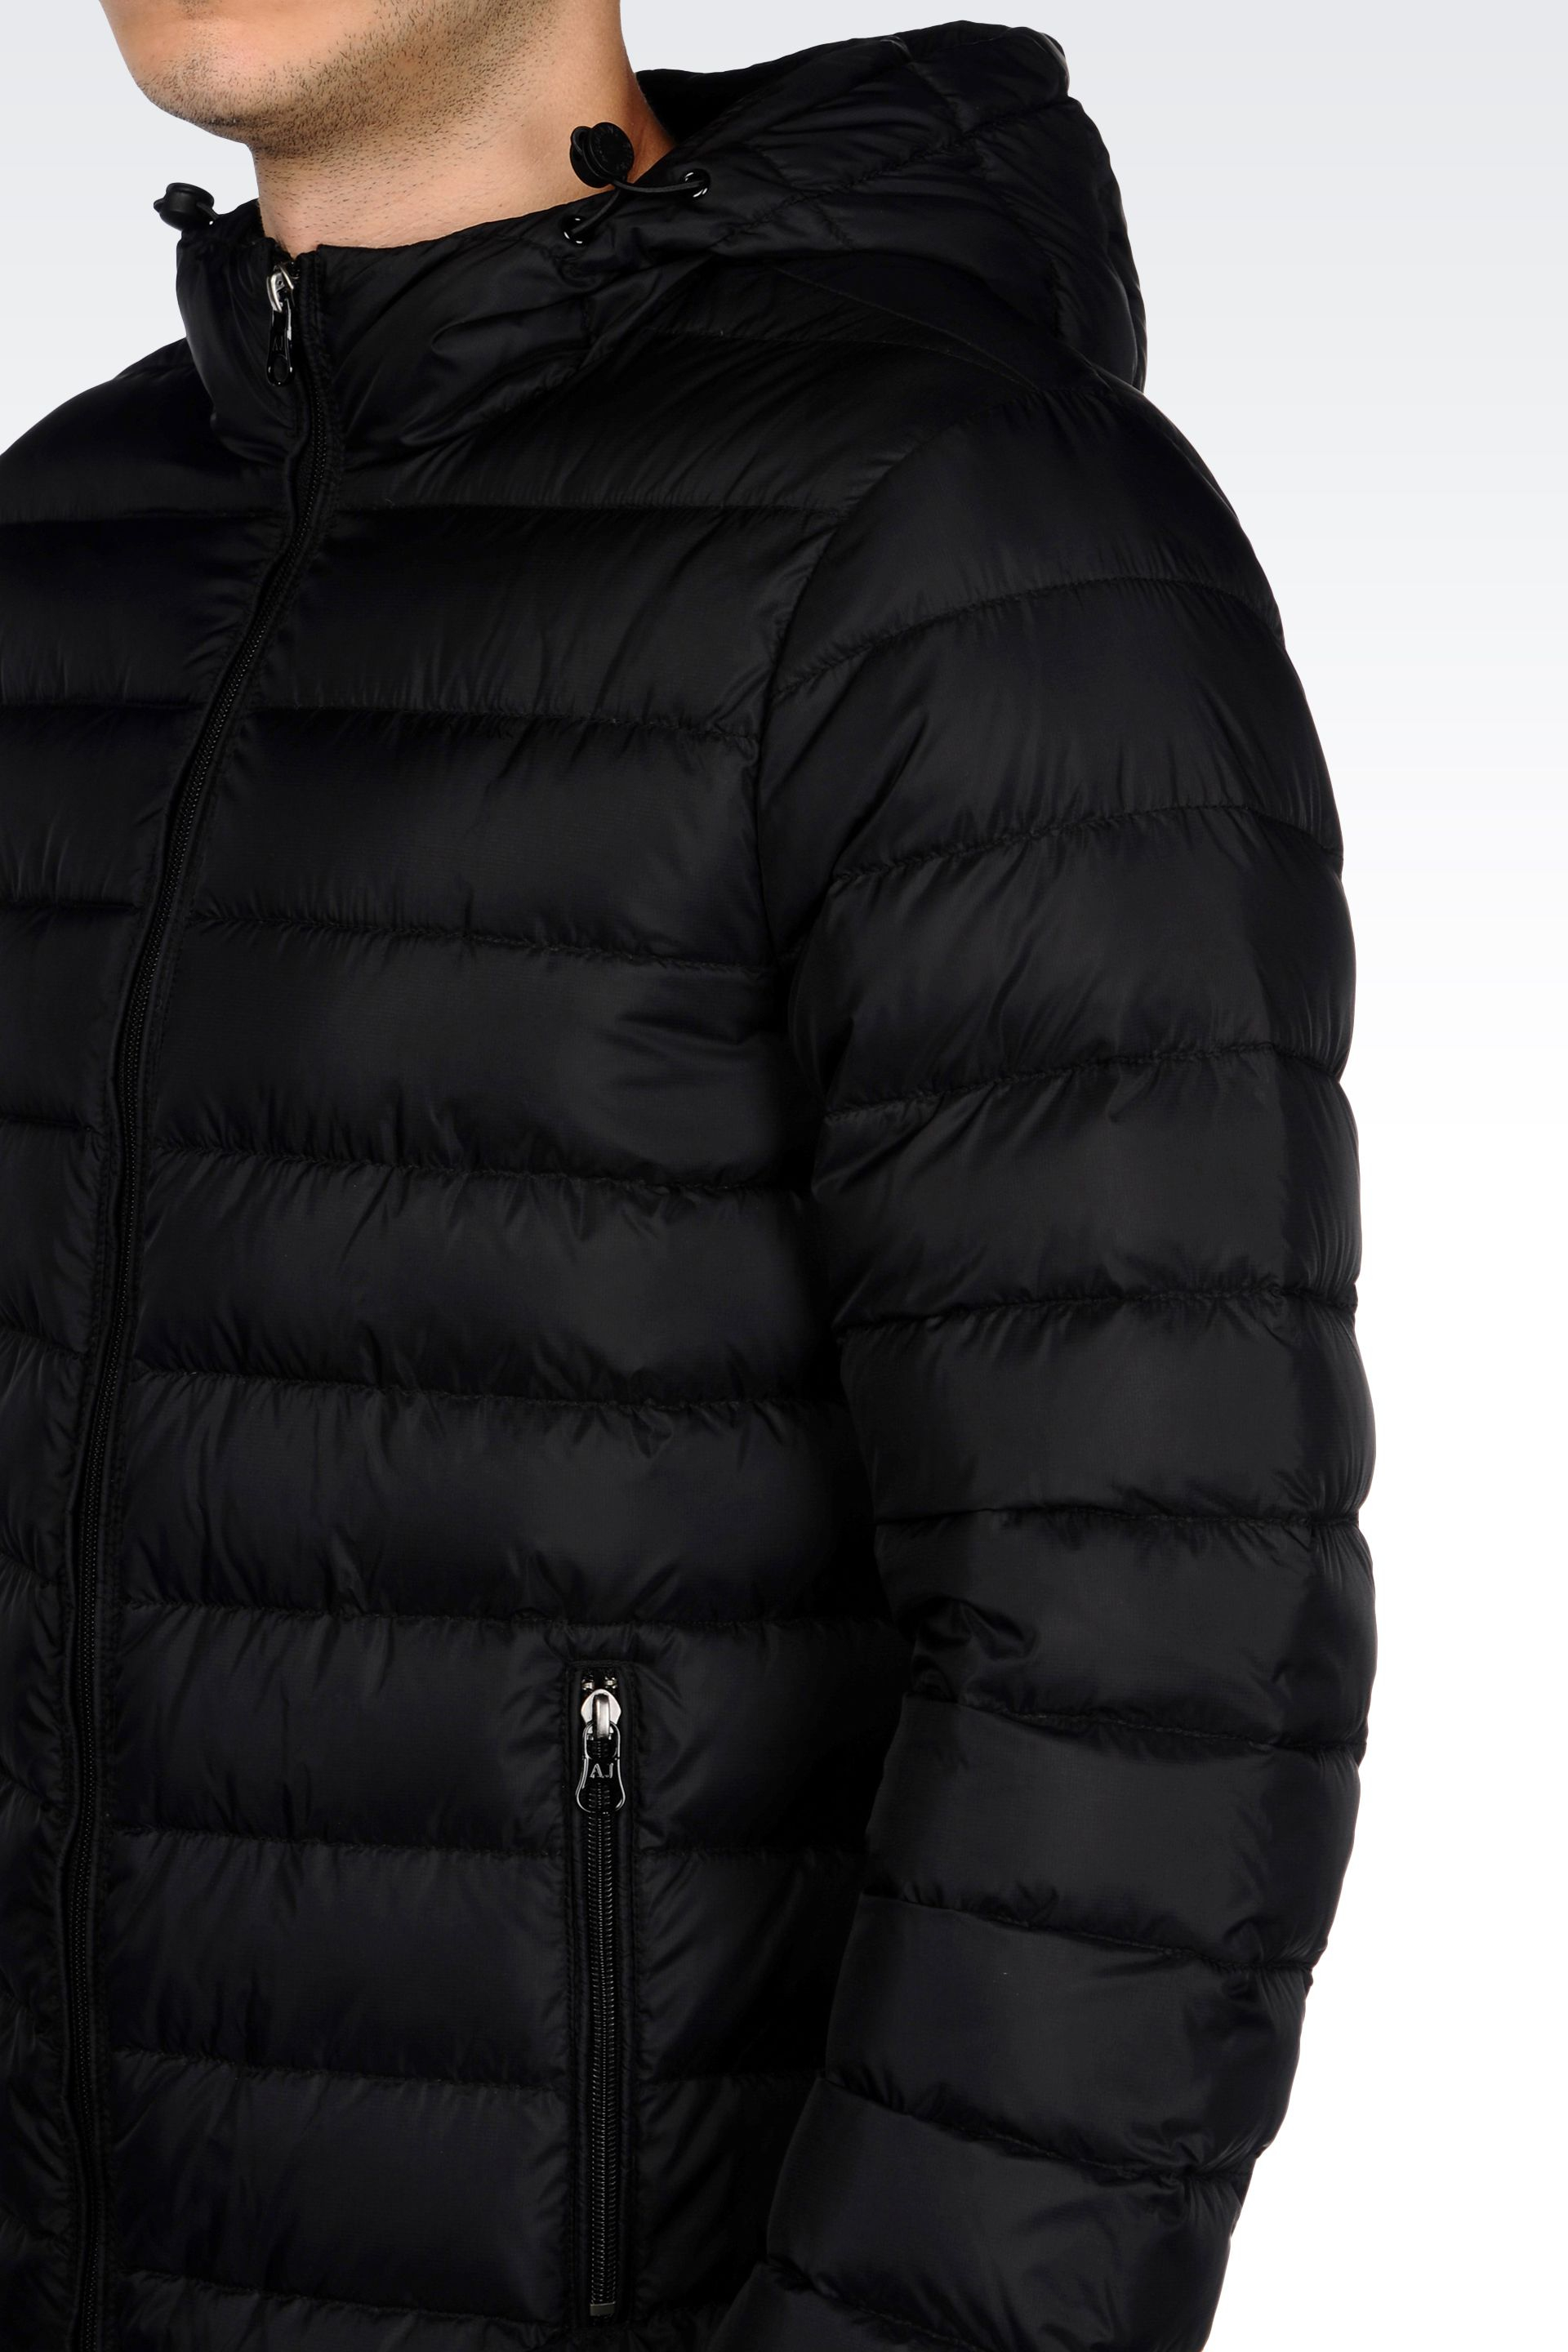 Lyst - Armani Jeans Hooded Down Jacket In Technical Fabric in Black ... a37f05d4c